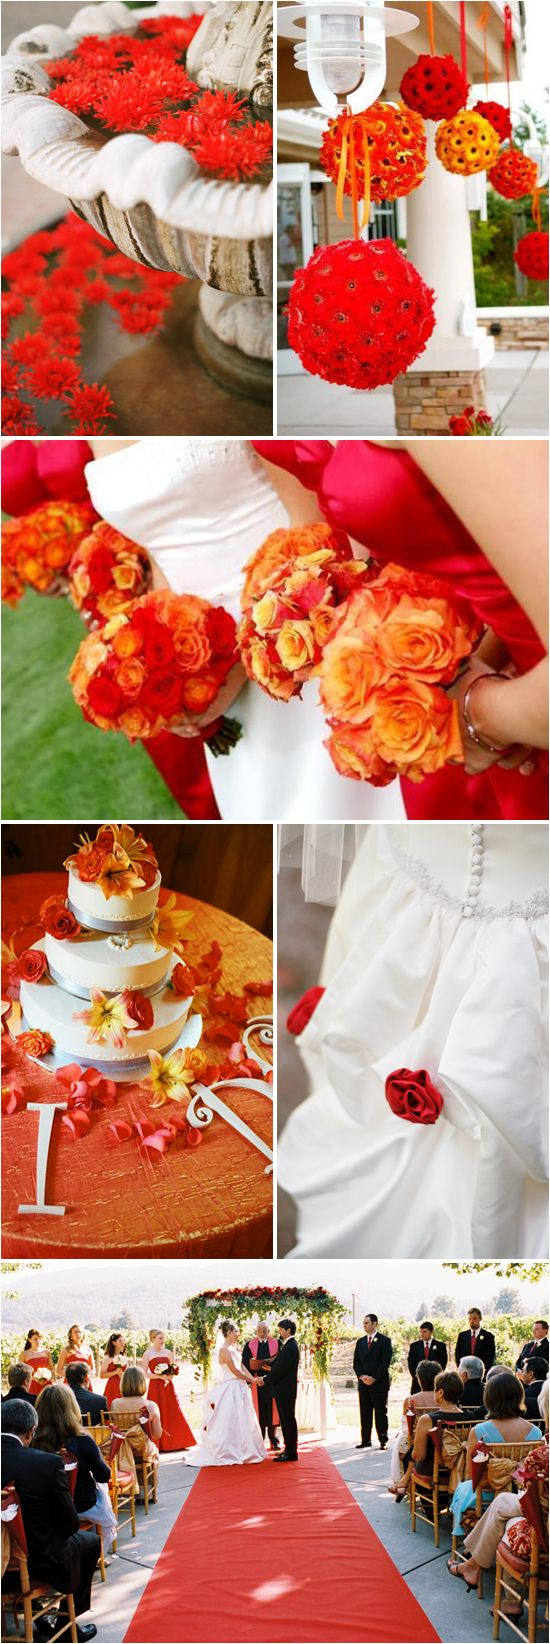 "Despite the VIBRANT Color... the floating flowers, pomanders, round bouquet of roses, flower adorned 3 tier cake and aisle runner represent a very ""Traditional Style""  (Orange and red wedding)."